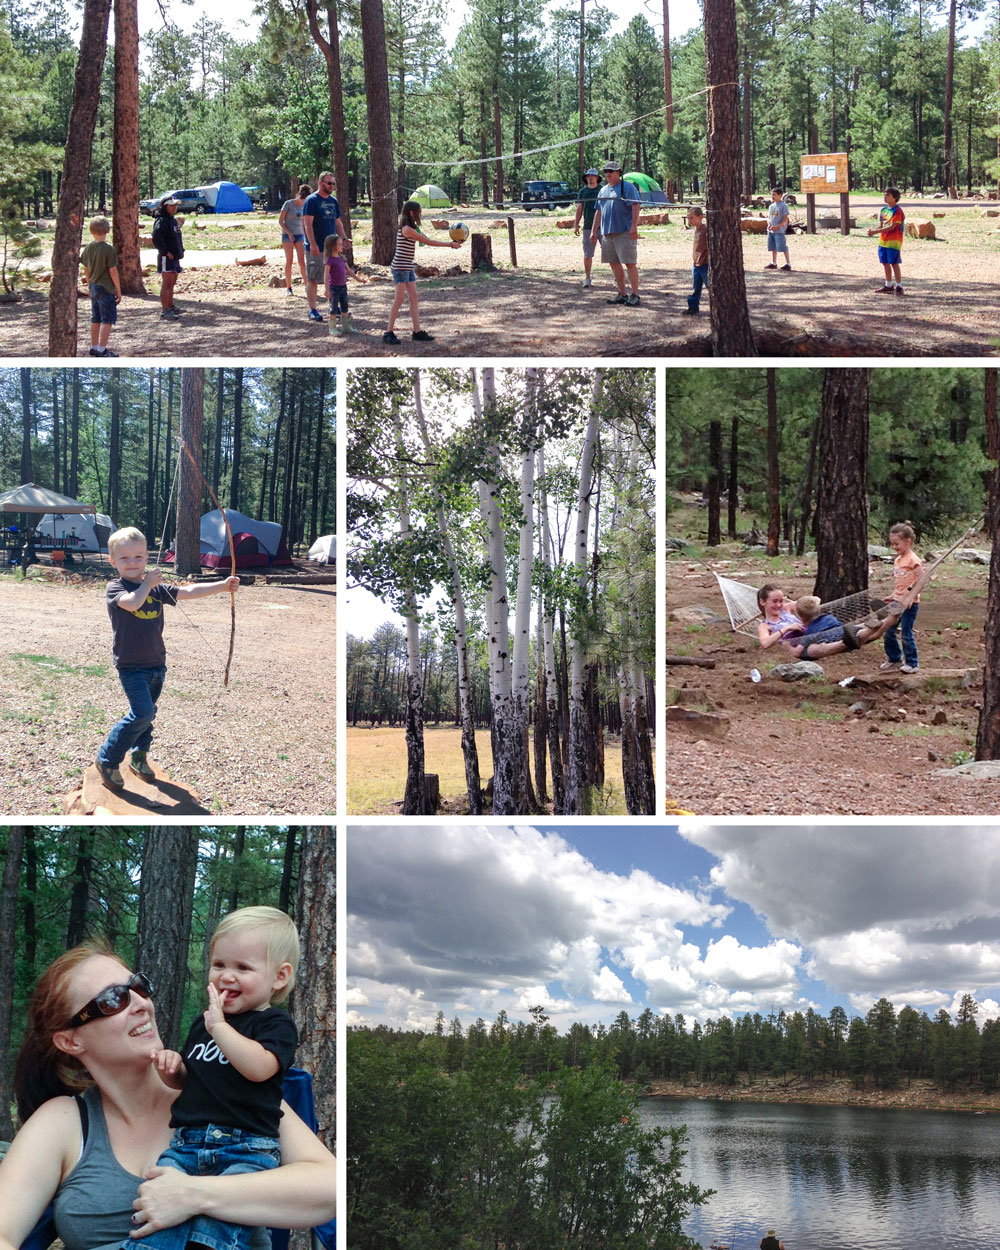 Camping Trip - Woods Canyon Lake, Sitgreaves National Forest, AZ